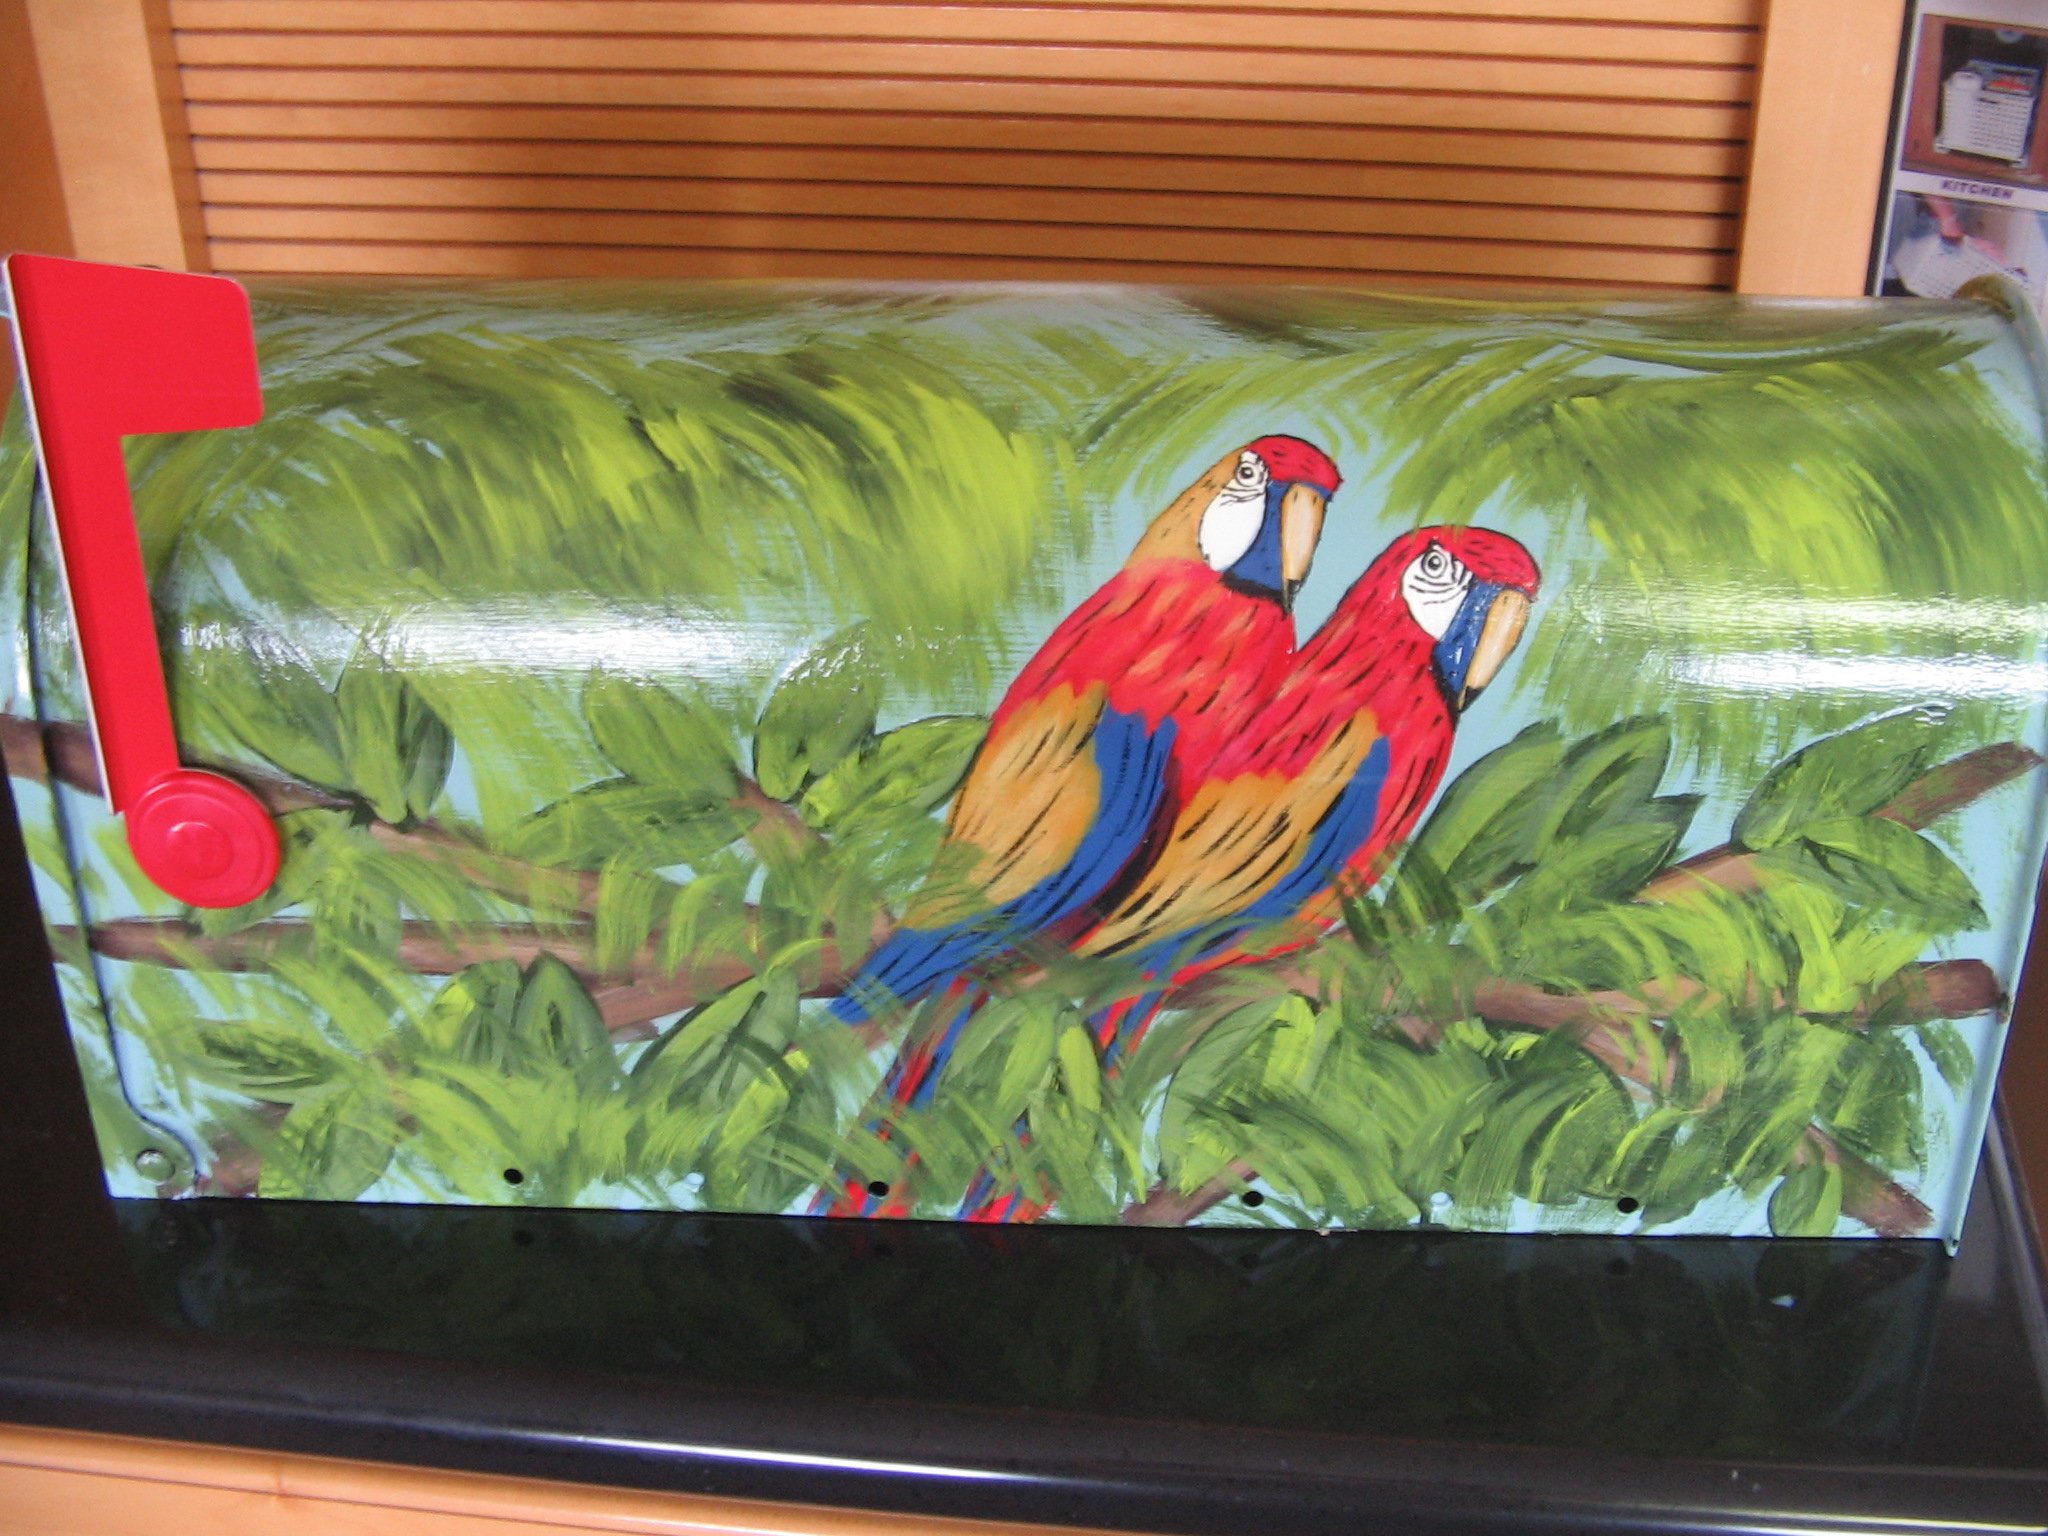 painted mailbox designs. The Design Is Hand Painted Mailbox Designs A